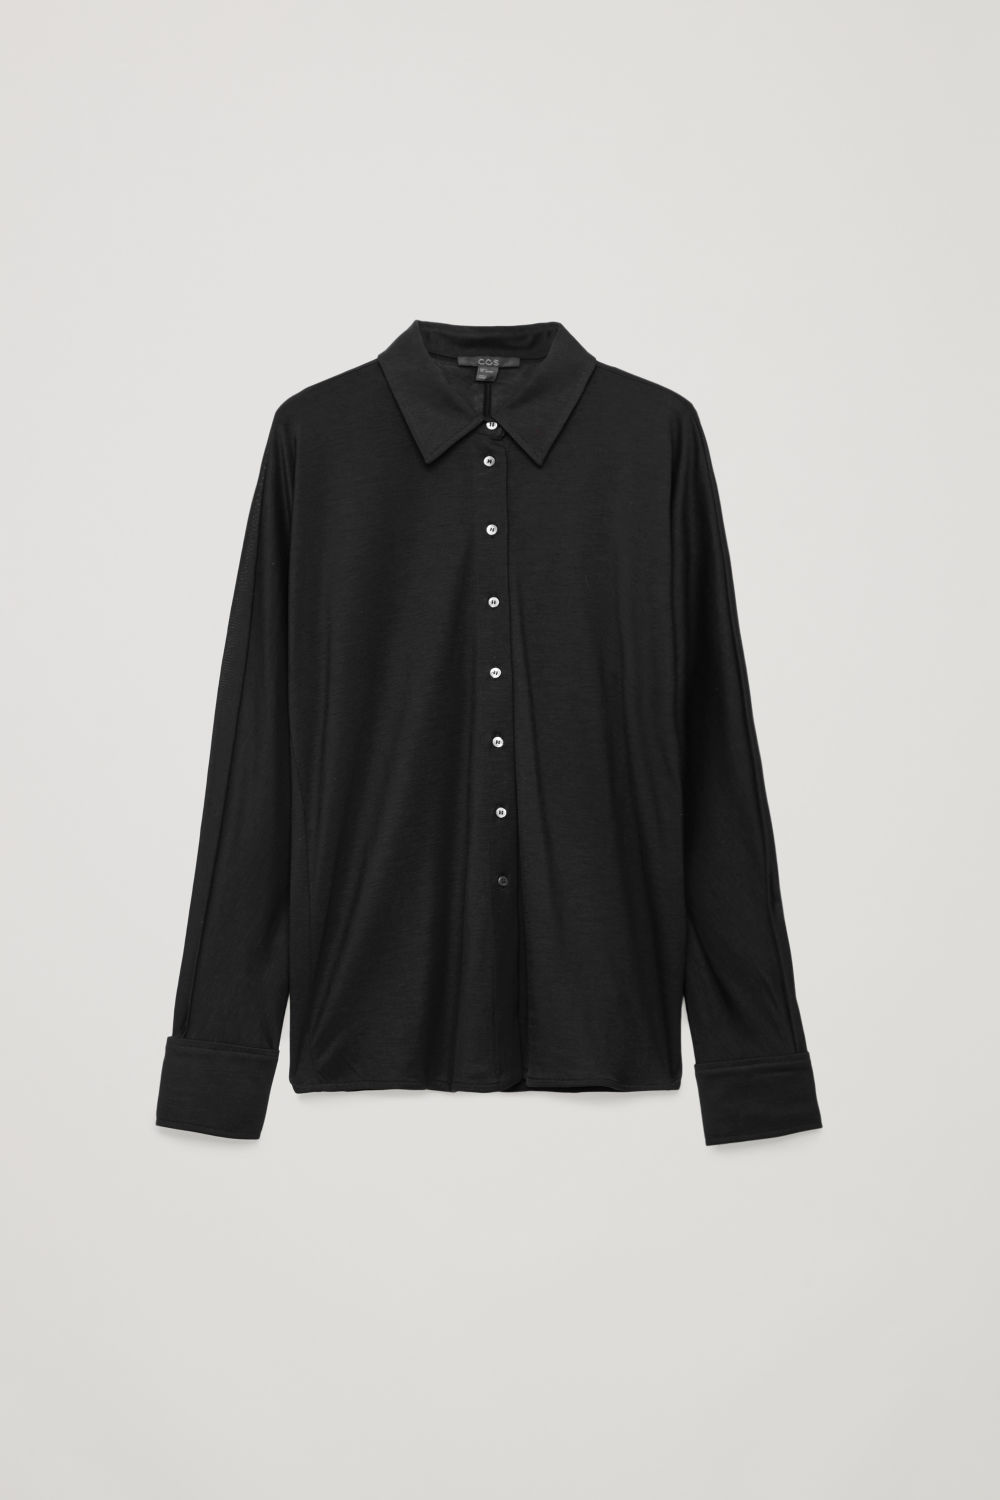 BATWING-SLEEVED JERSEY SHIRT